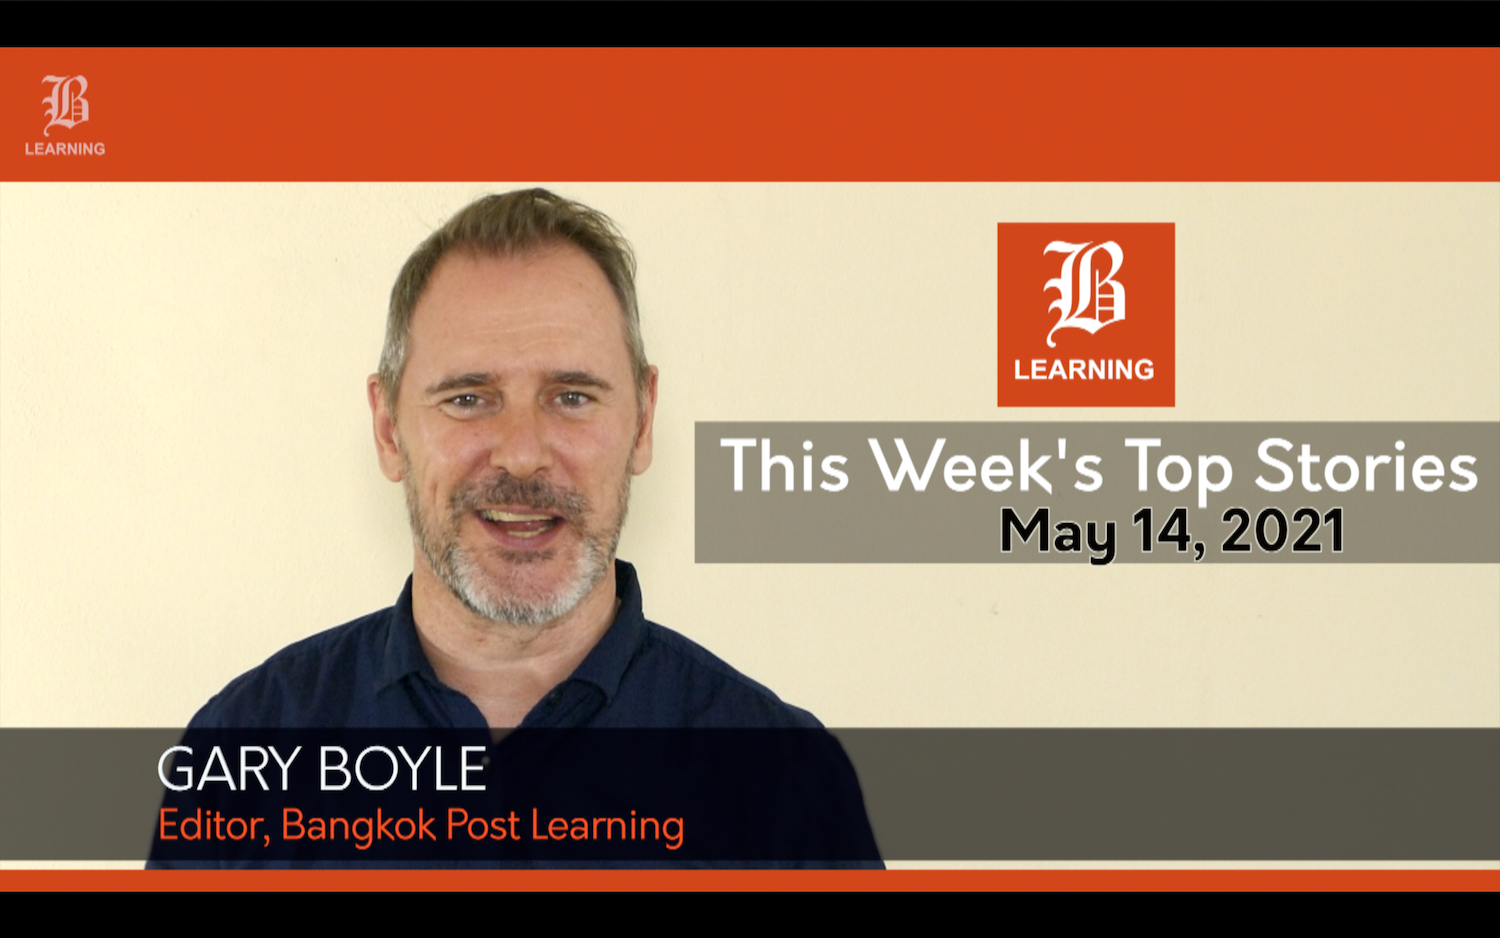 VIDEO: This Week's Top Stories May 14